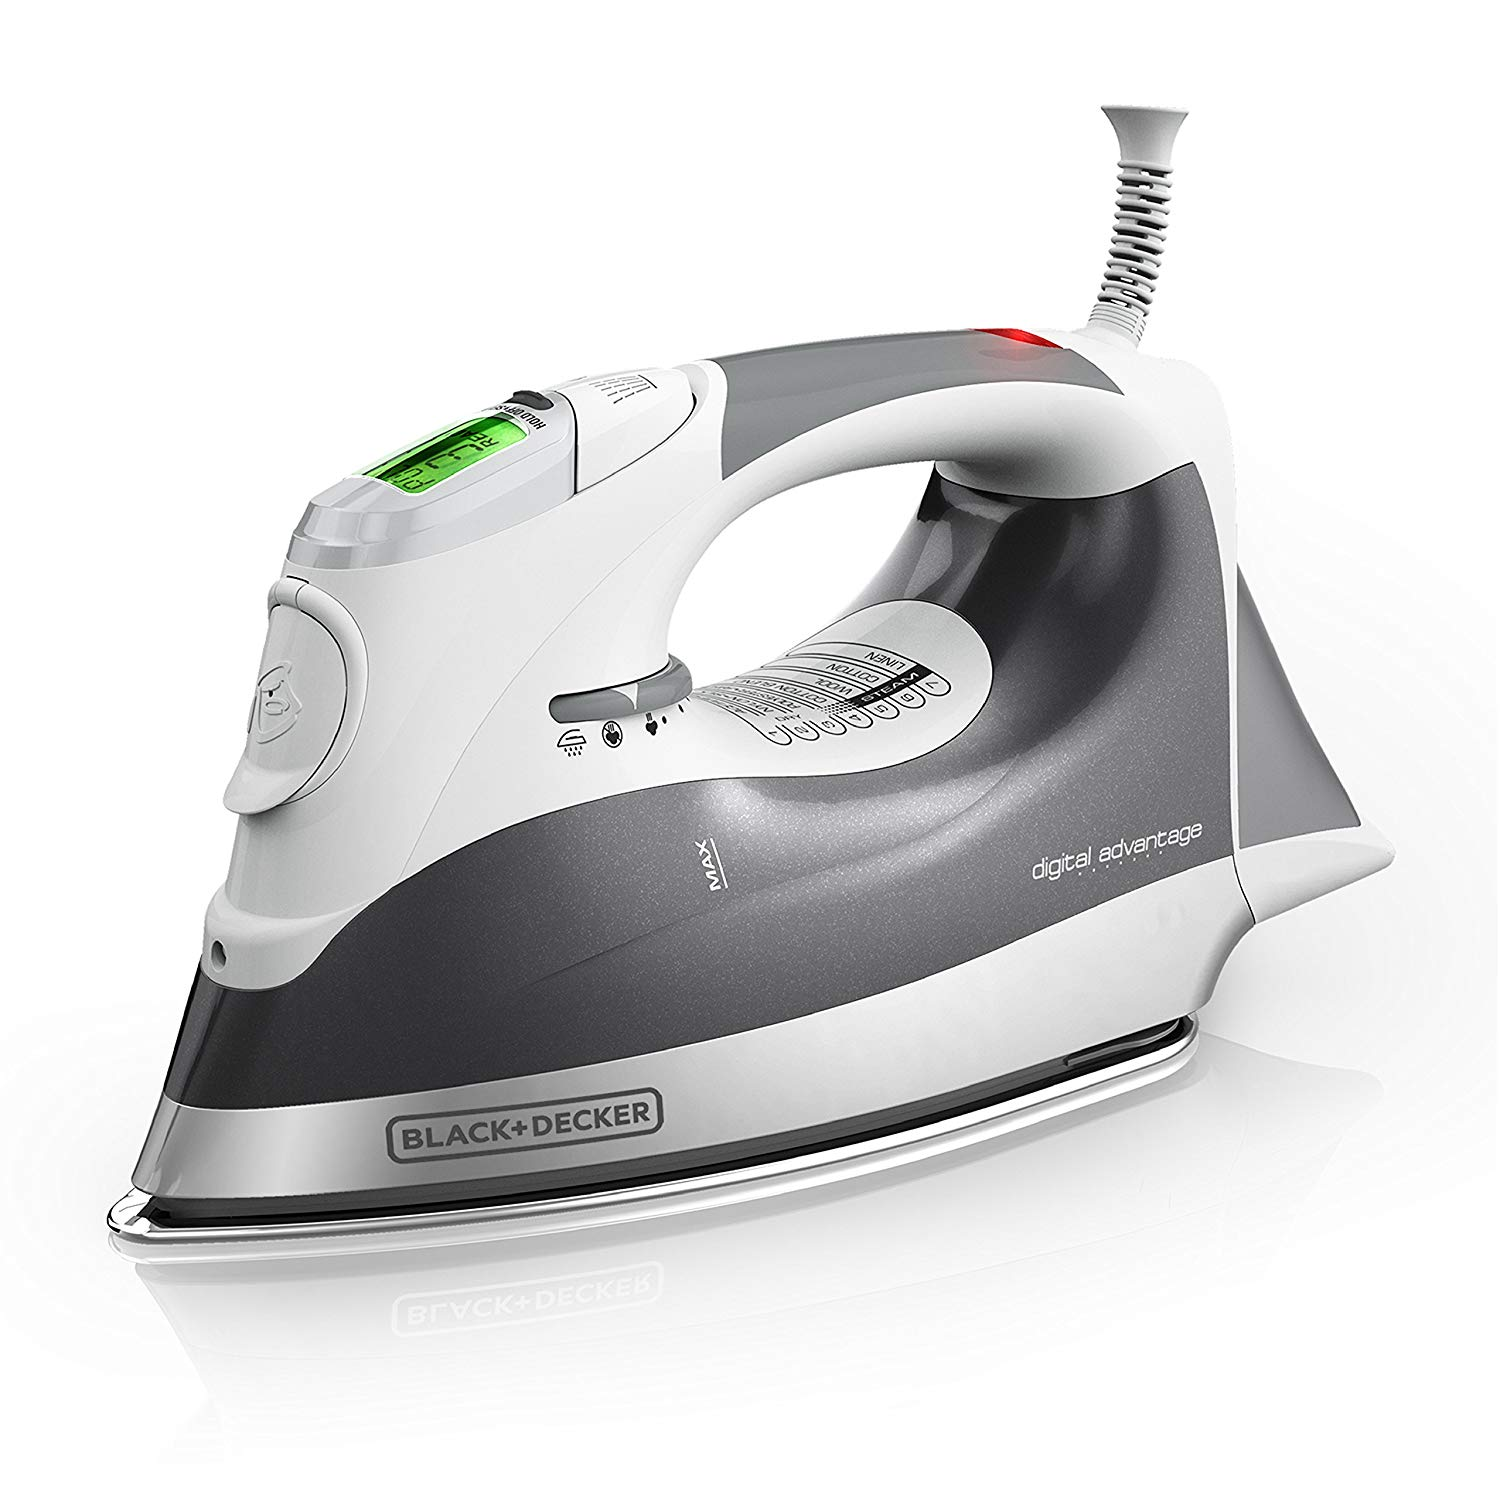 BLACK+DECKER Digital Advantage Professional Steam Iron, LCD Screen, Gray, D2030.